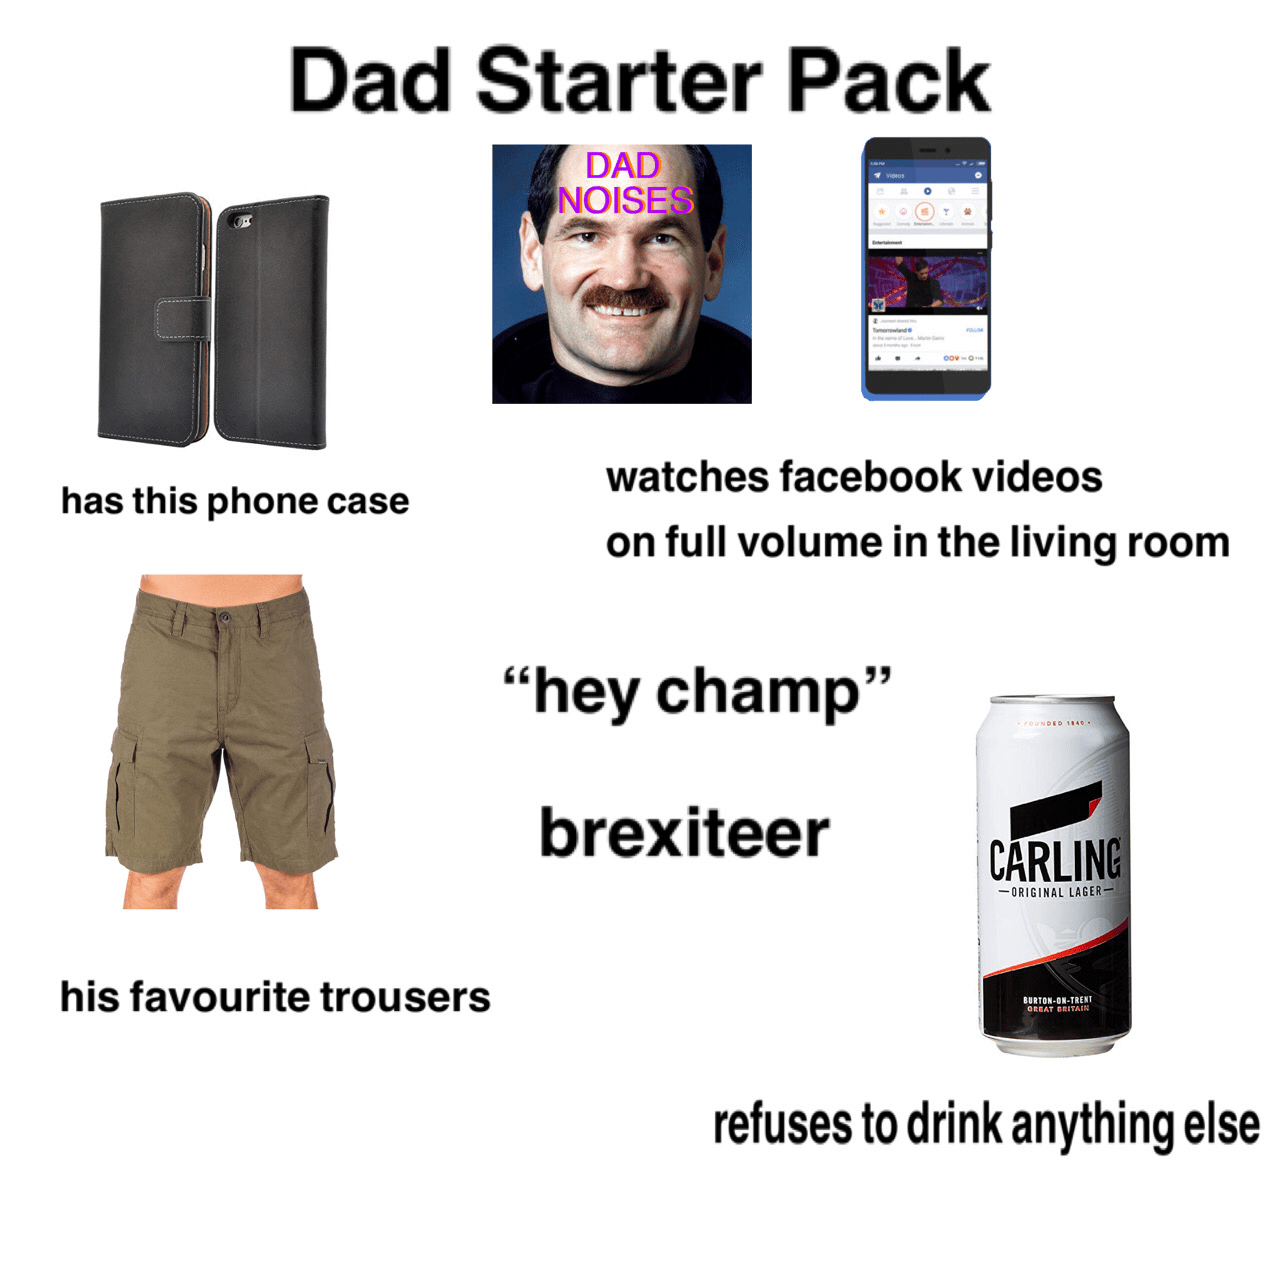 20 Starter Pack Memes That Are Dead On Funny Gallery